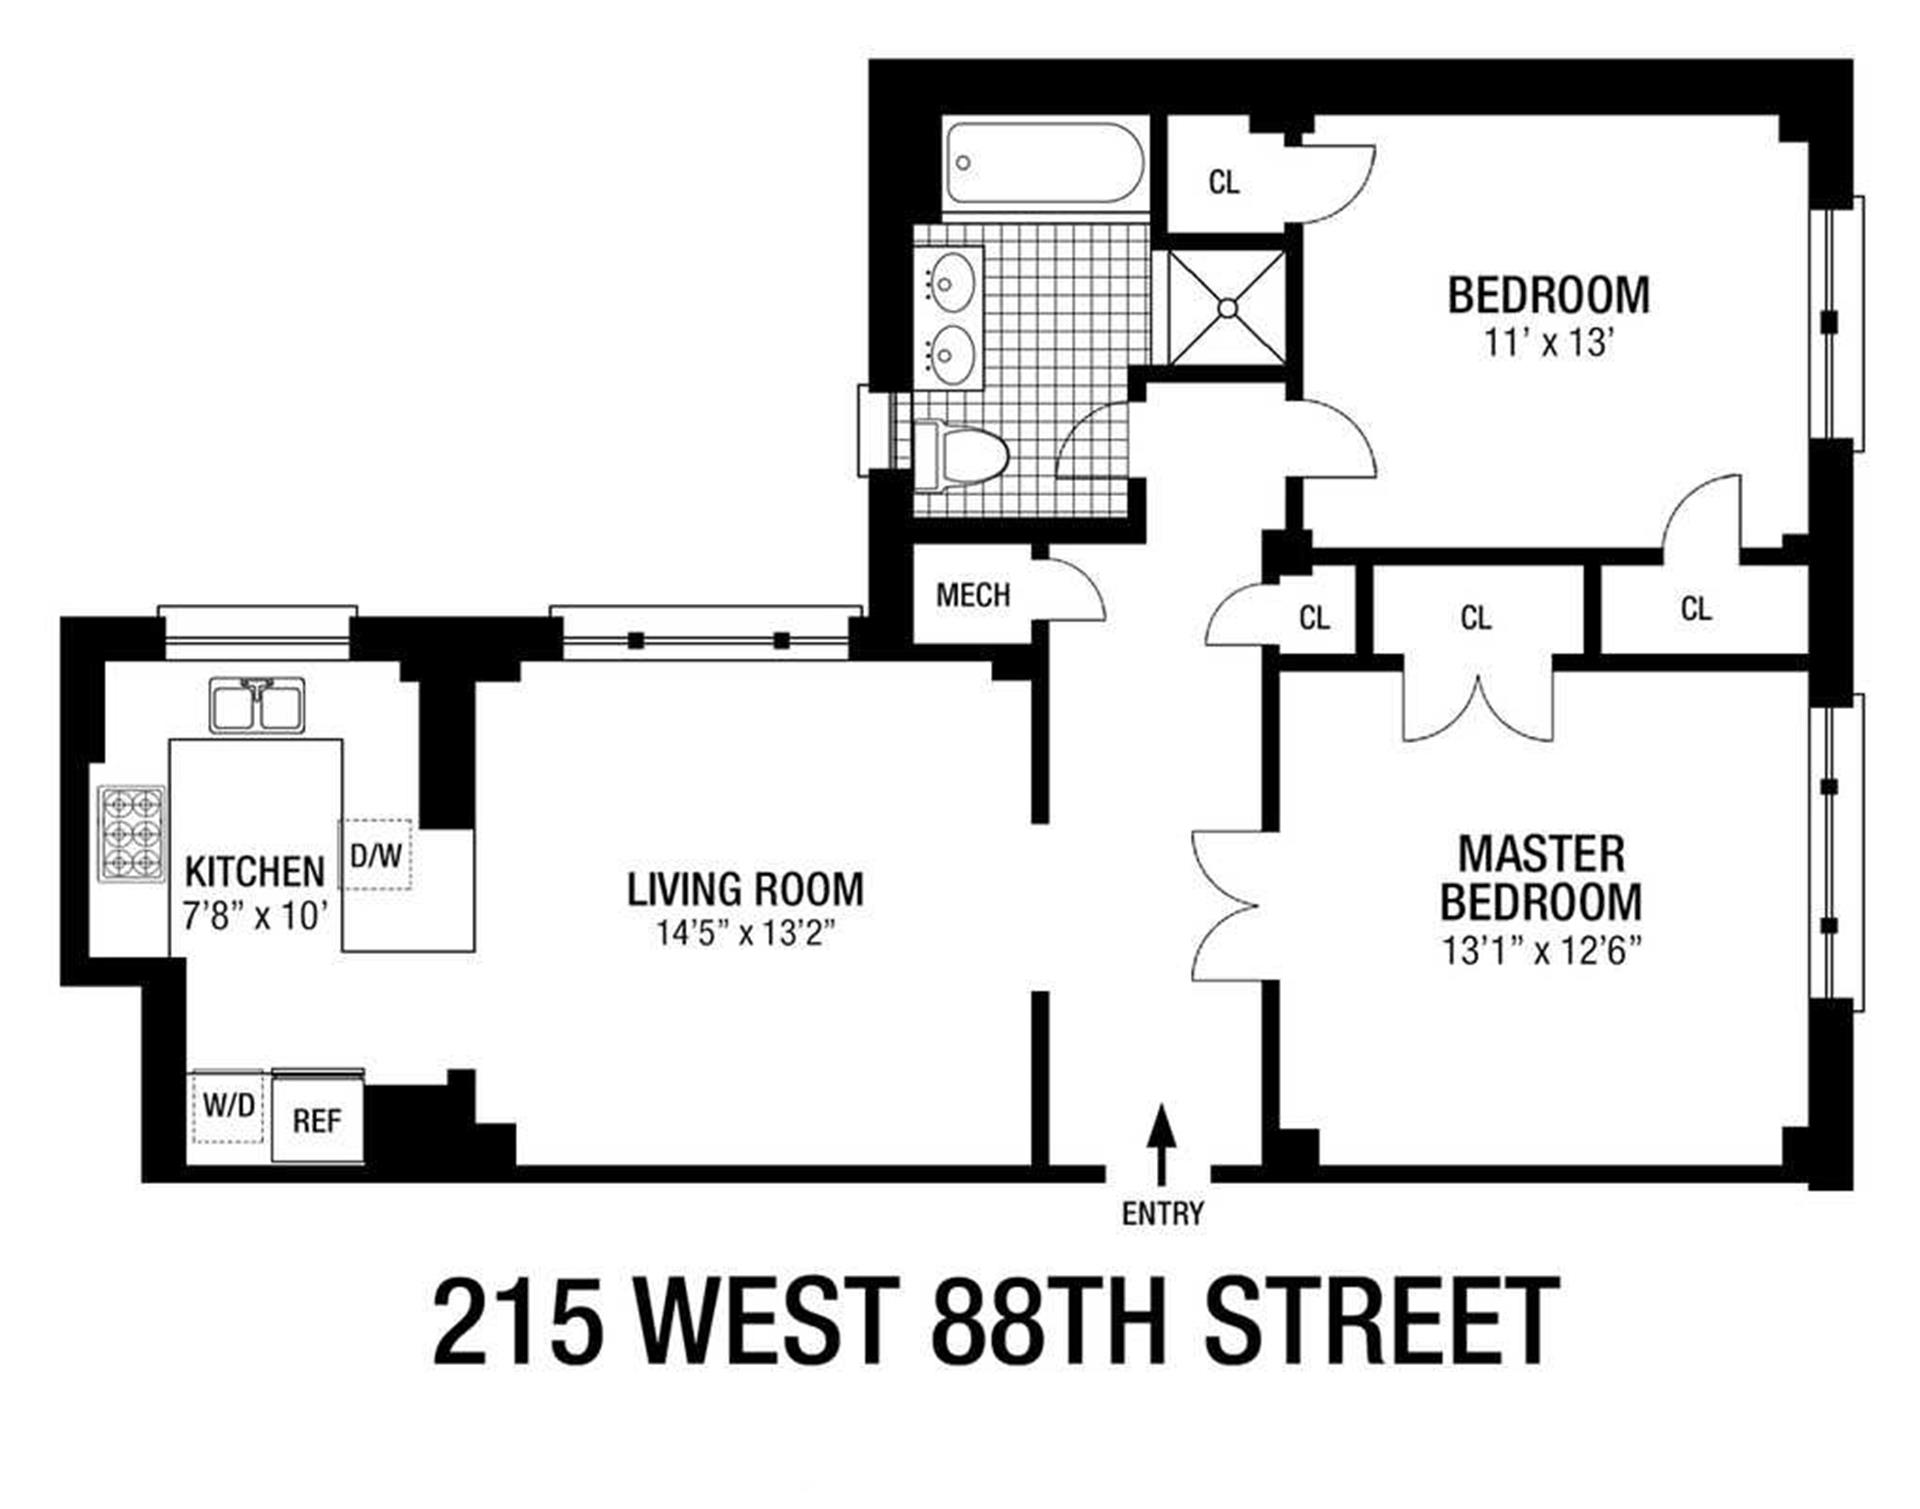 Floor plan of The Merrion, 215 West 88th St, 4B - Upper West Side, New York